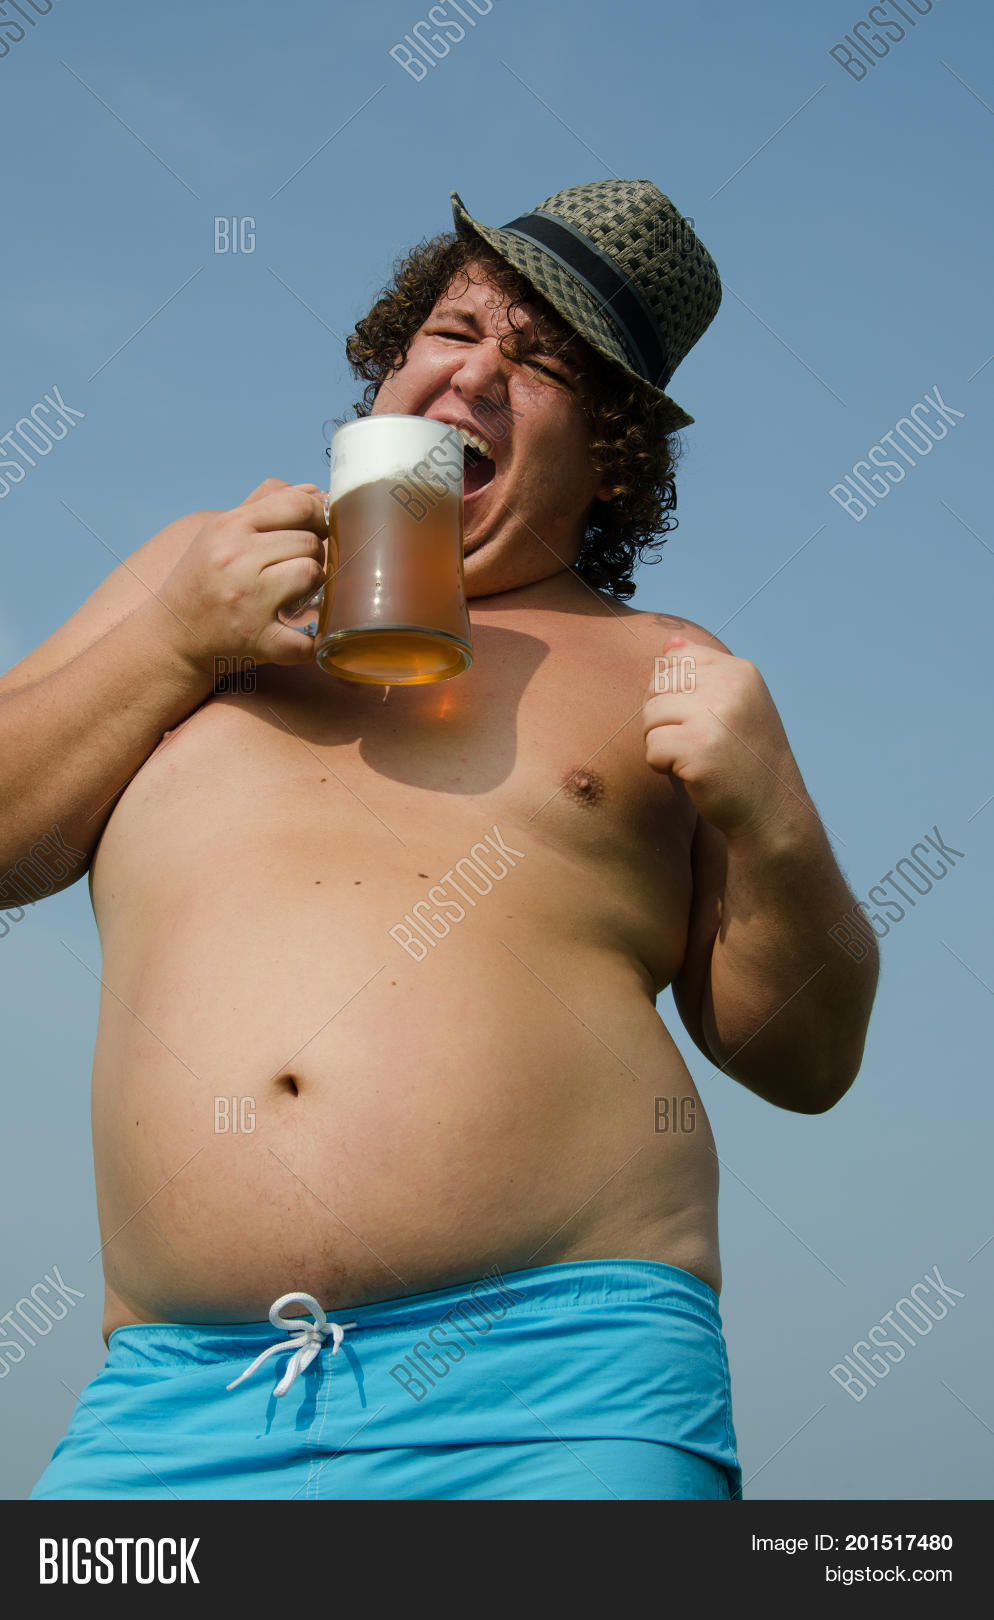 Party Drunk Man Beer Image Photo Free Trial Bigstock